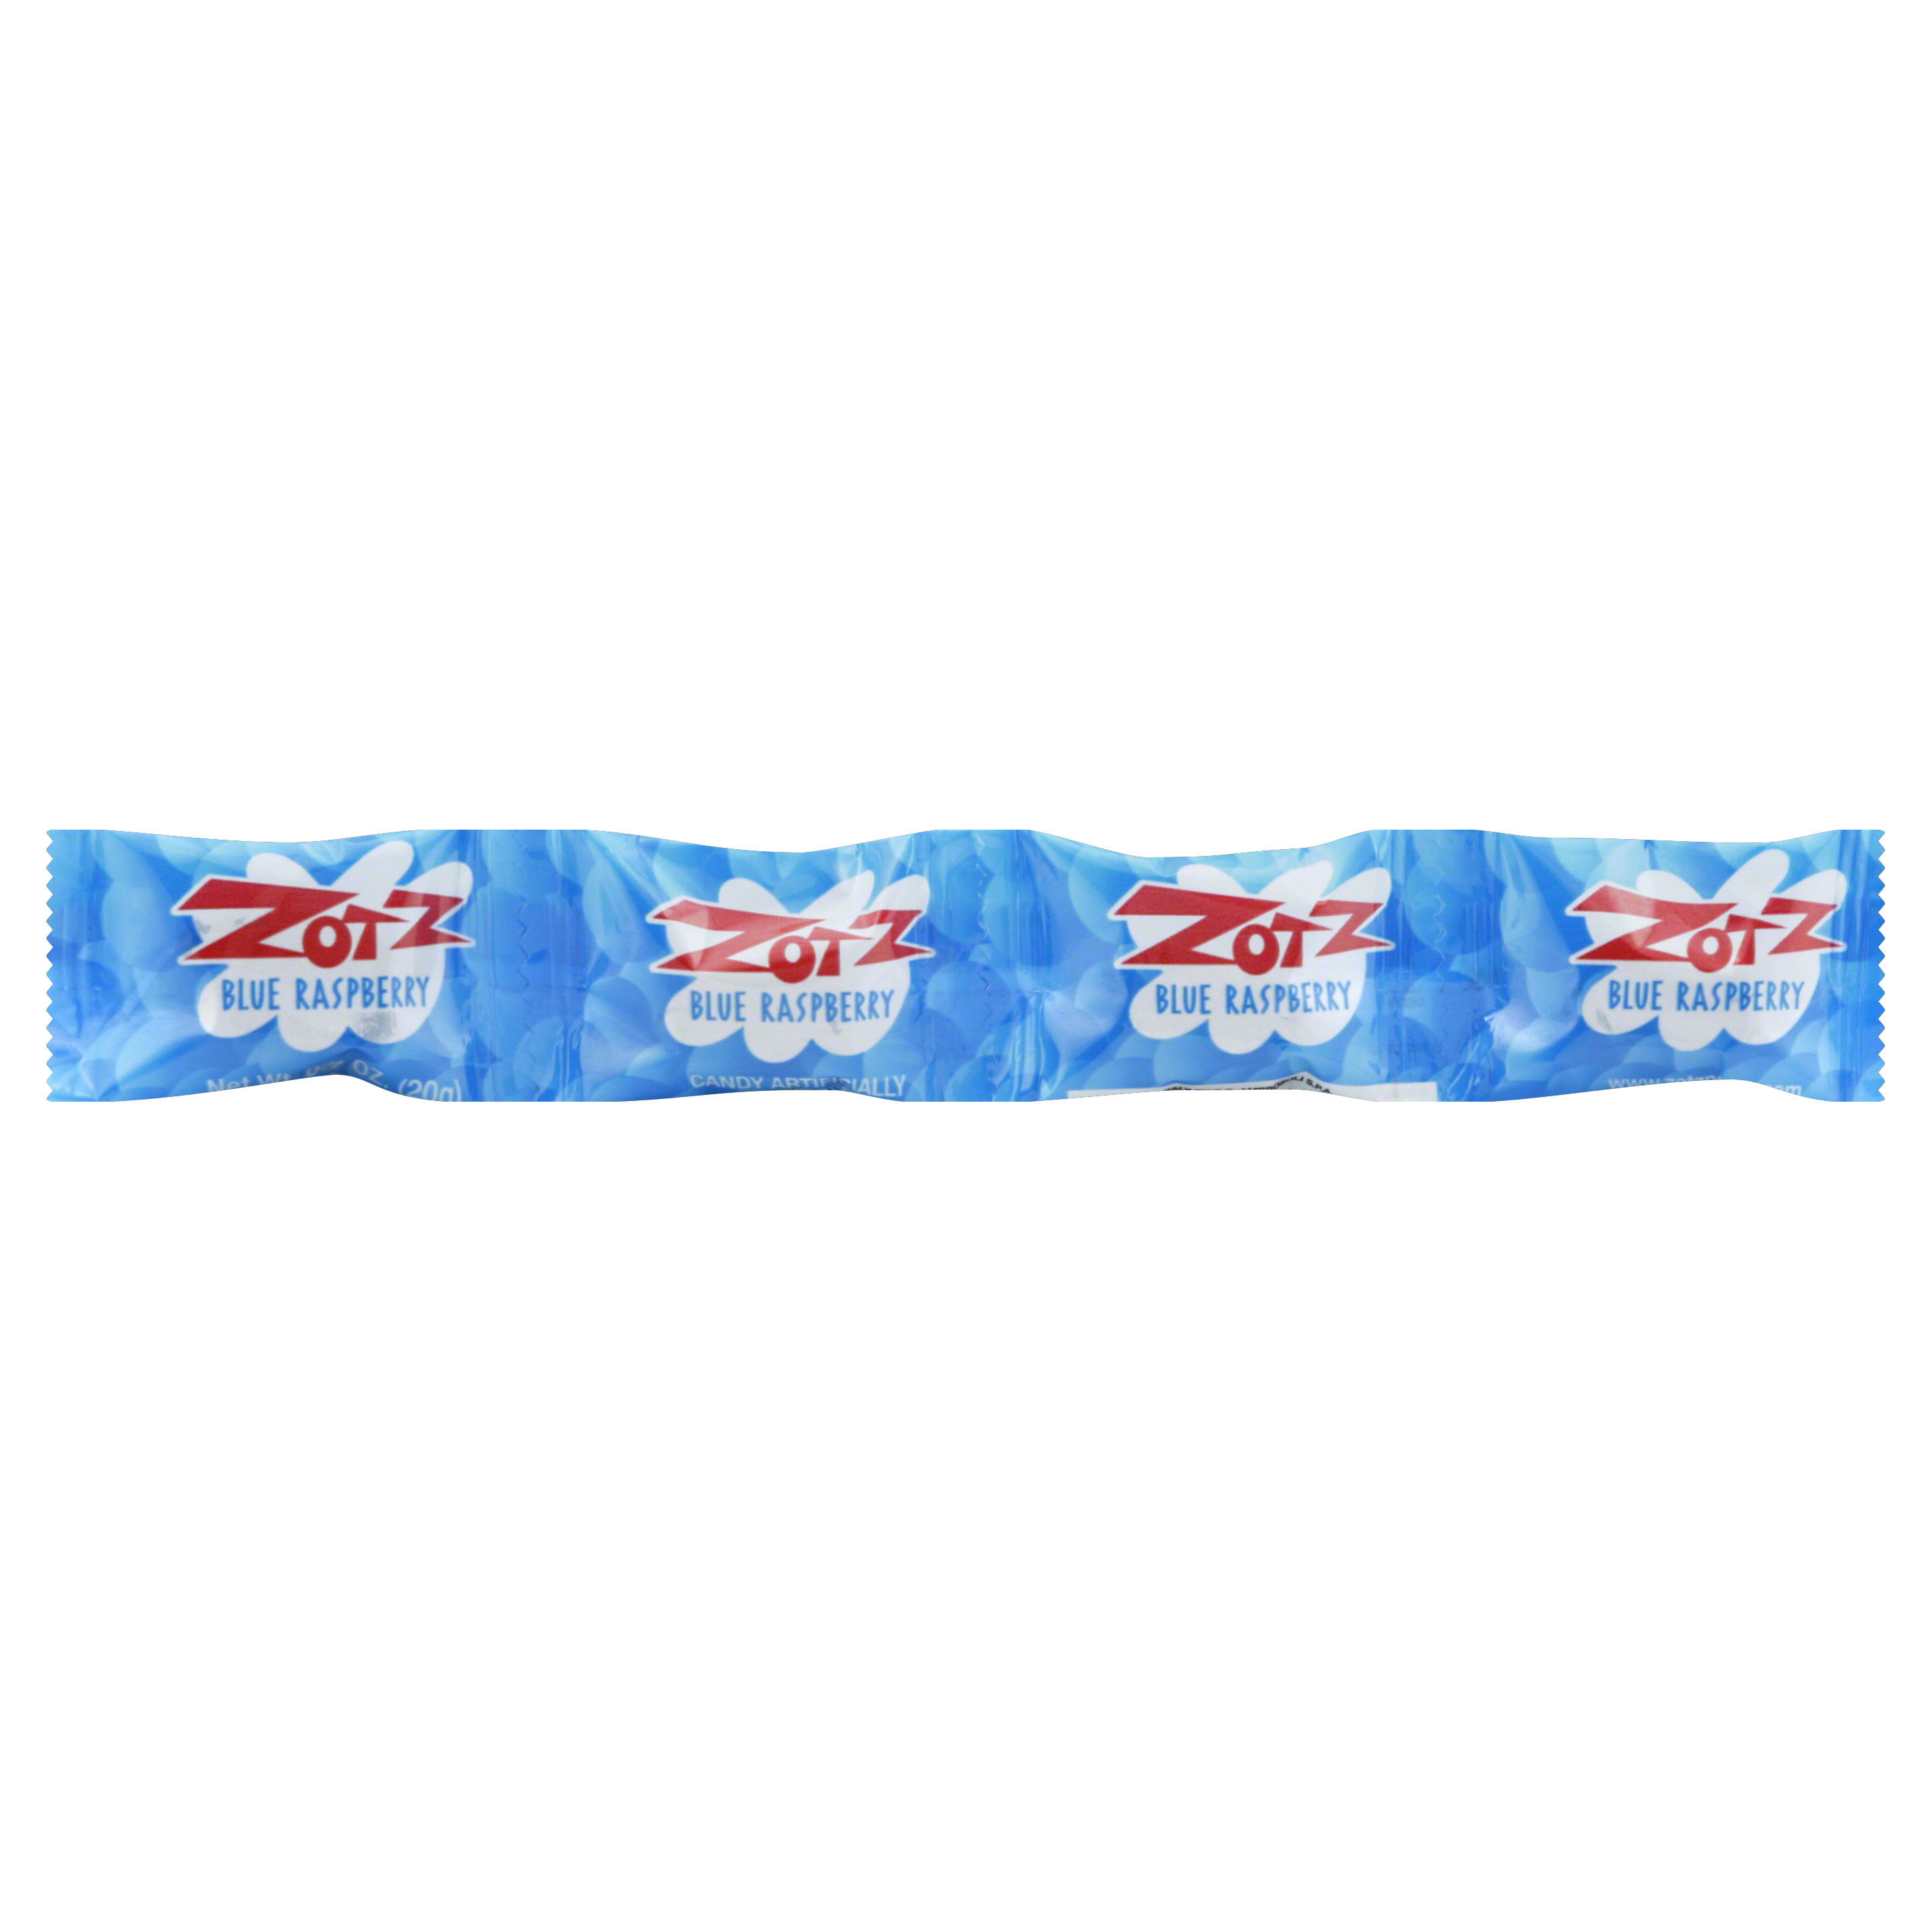 Zotz Candy, Blue Raspberry - 0.7 oz